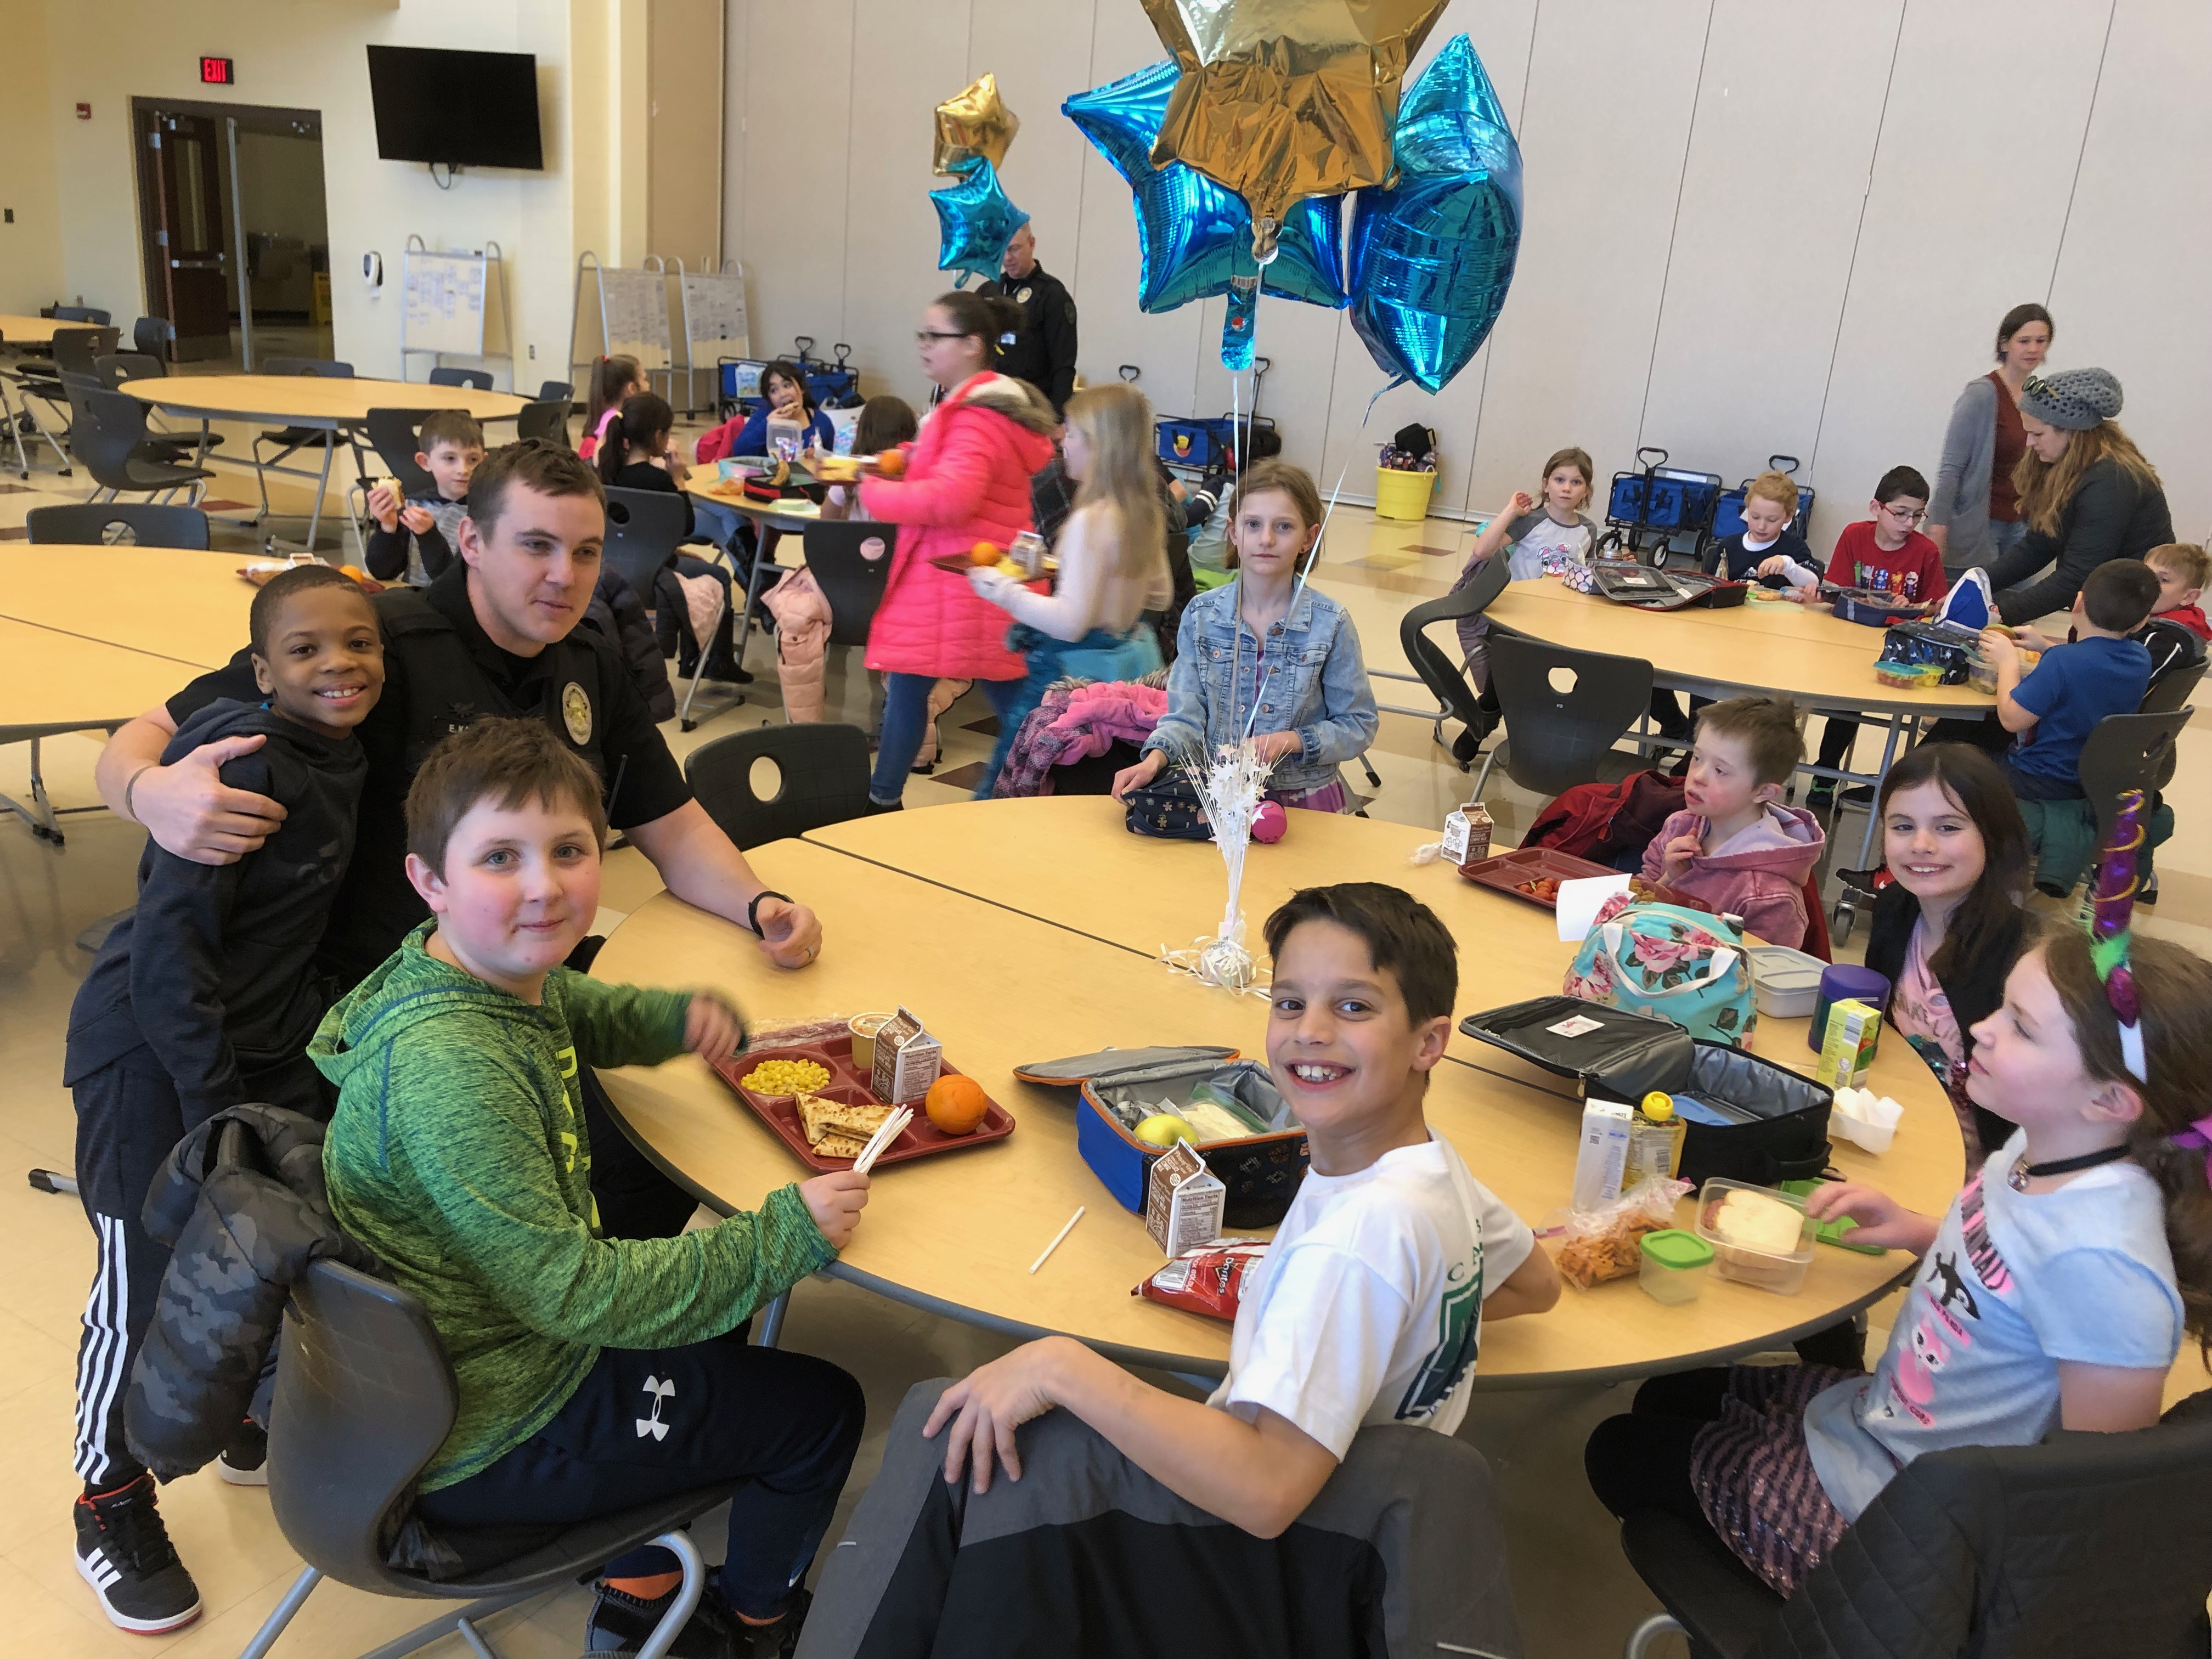 Students had the opportunity to eat lunch with Dyer police officers and show them how to wait in line, grab their lunch, and find a seat in the cafeteria. This was an opportunity for the students and officers to build positive relationships, the students loved asking questions and telling them stories! We loved showing our appreciation for everything they do!